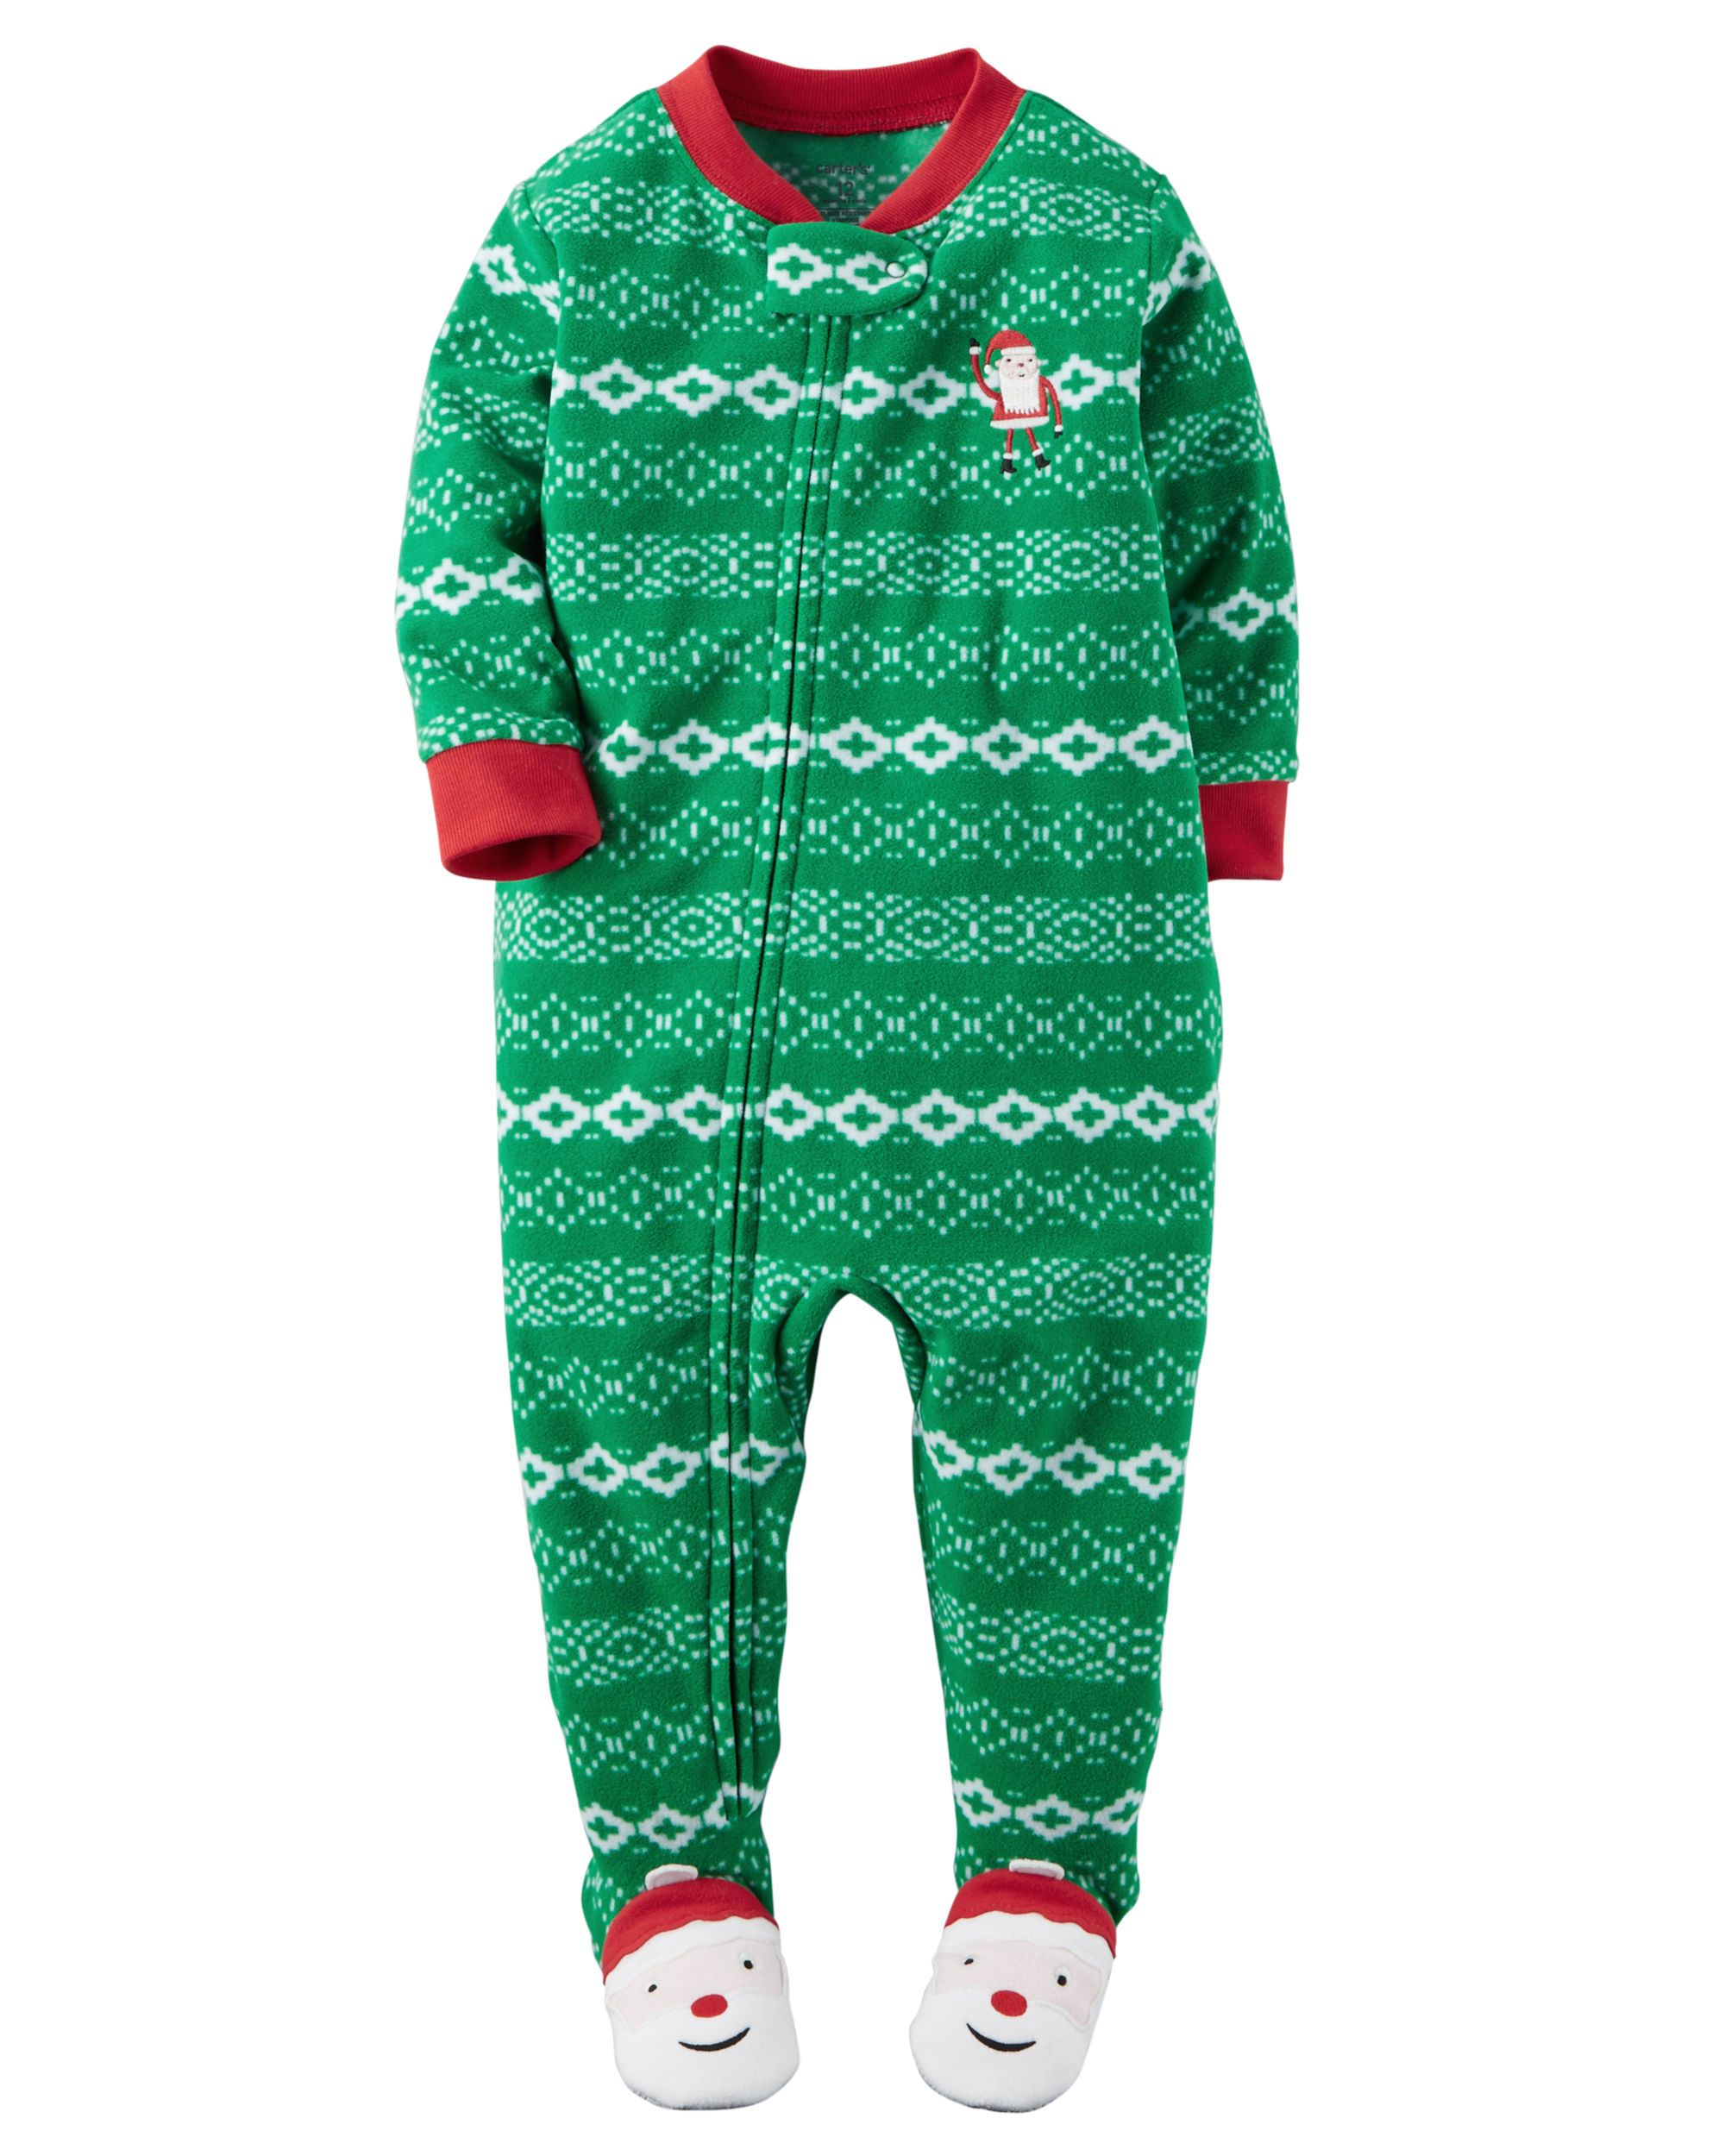 95c0bbf44f Crafted in snuggly fleece with a Fair Isle print and santa appliqués ...